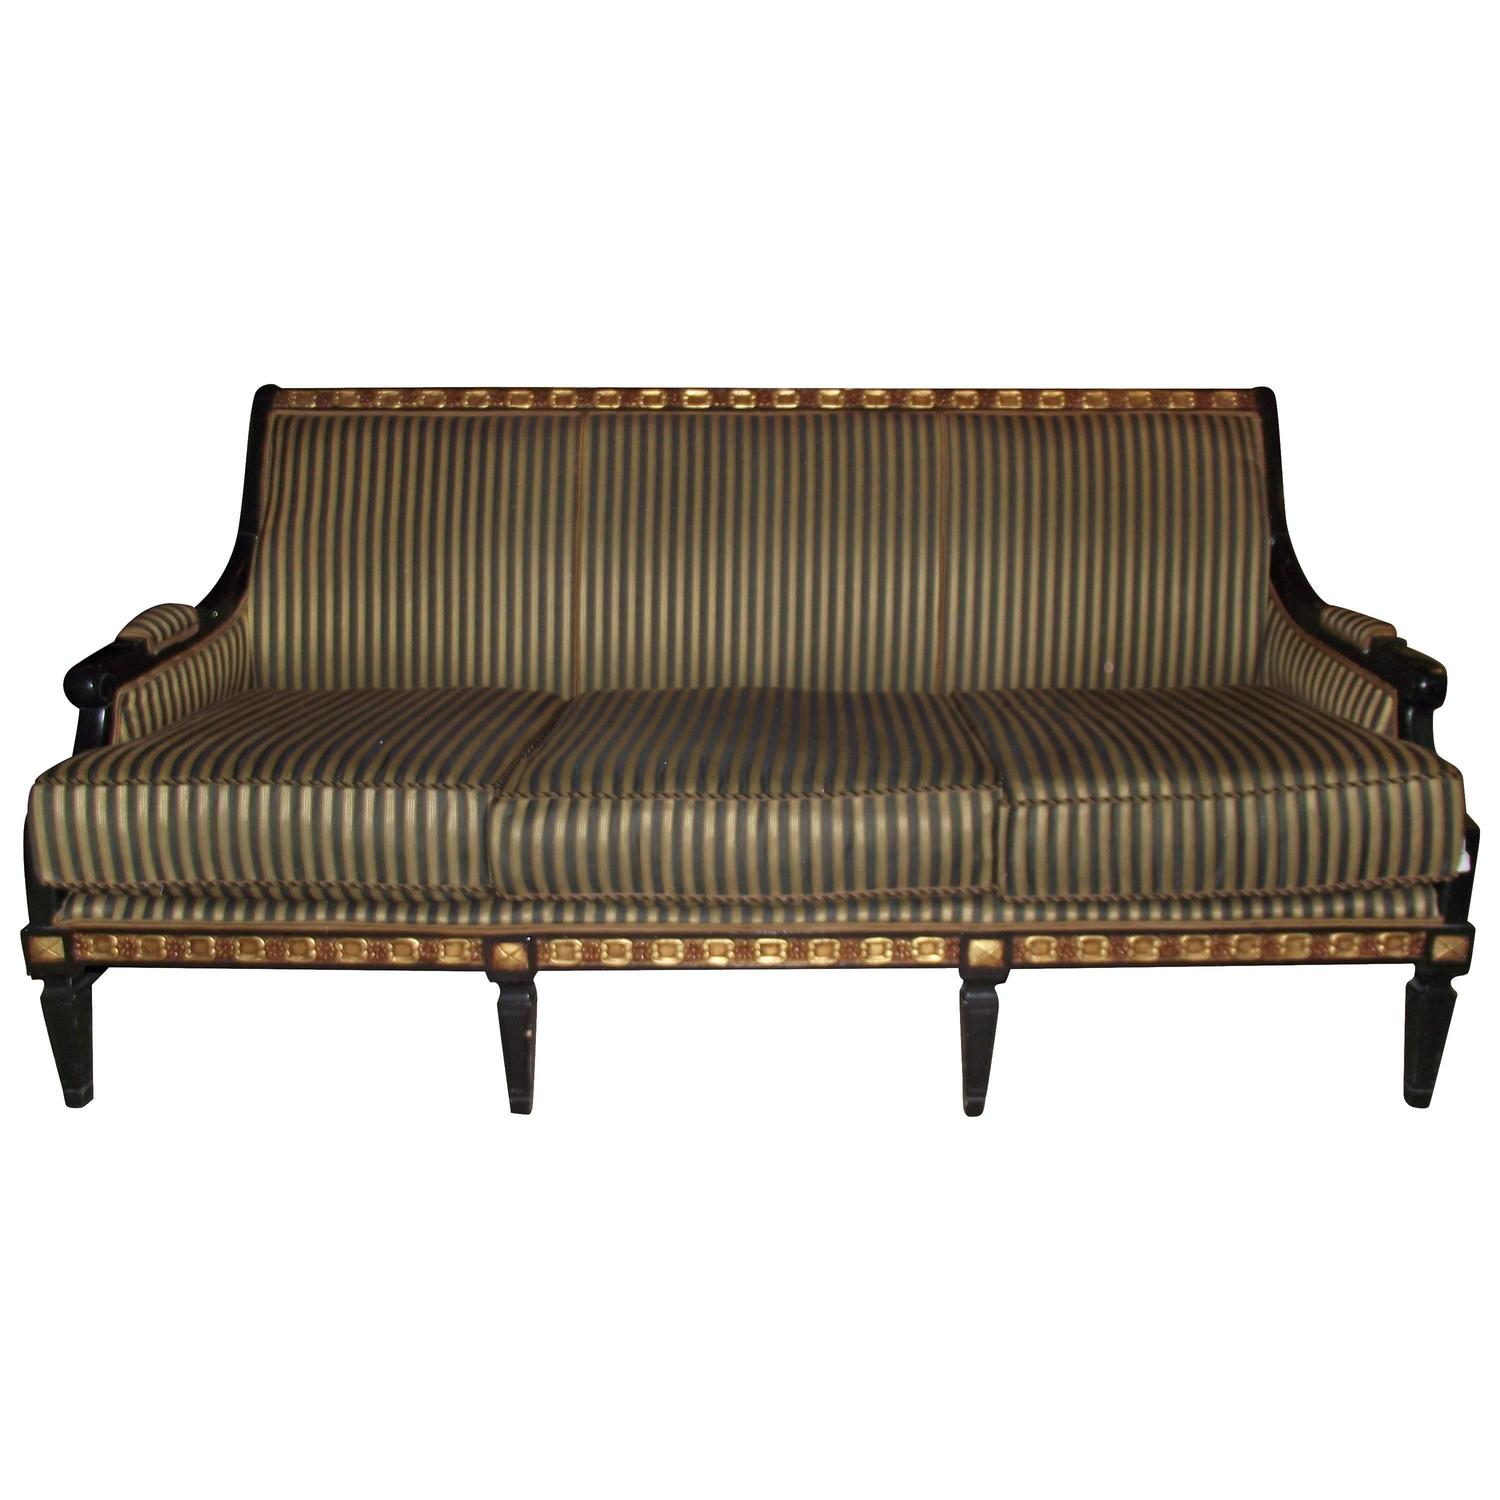 Neoclassic Style Sofa Covered In Black And Gold Stripe At 1stdibs